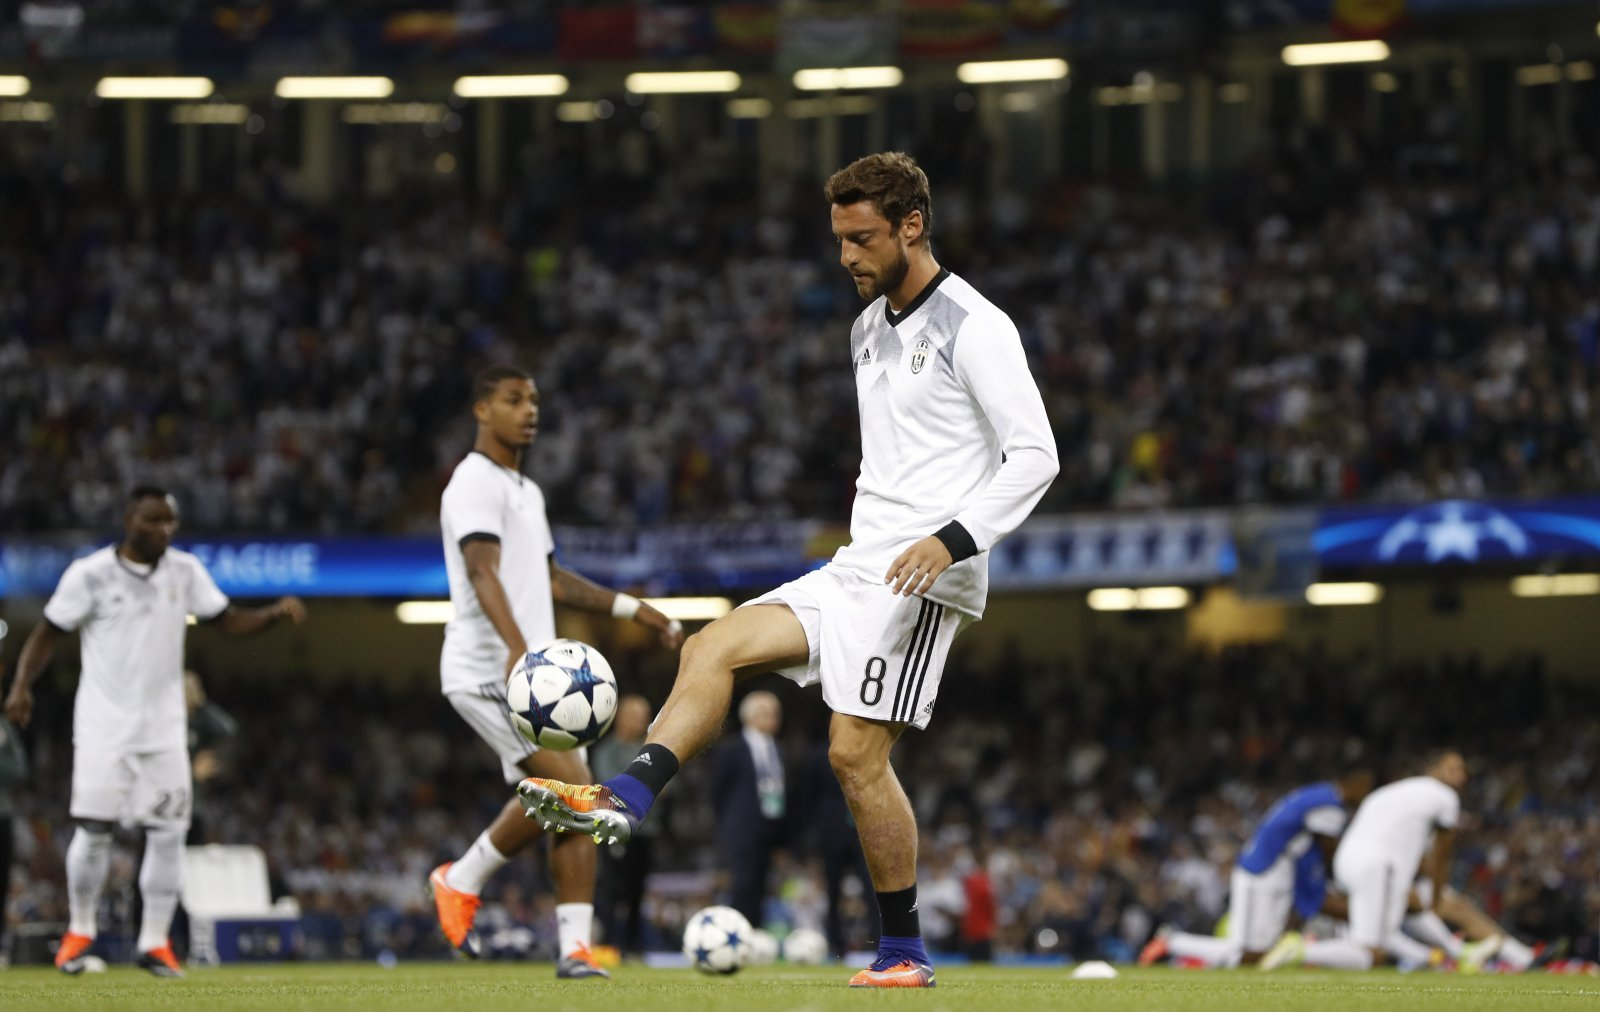 Claudio Marchisio could be the kind of signing to give Tottenham that winning feeling